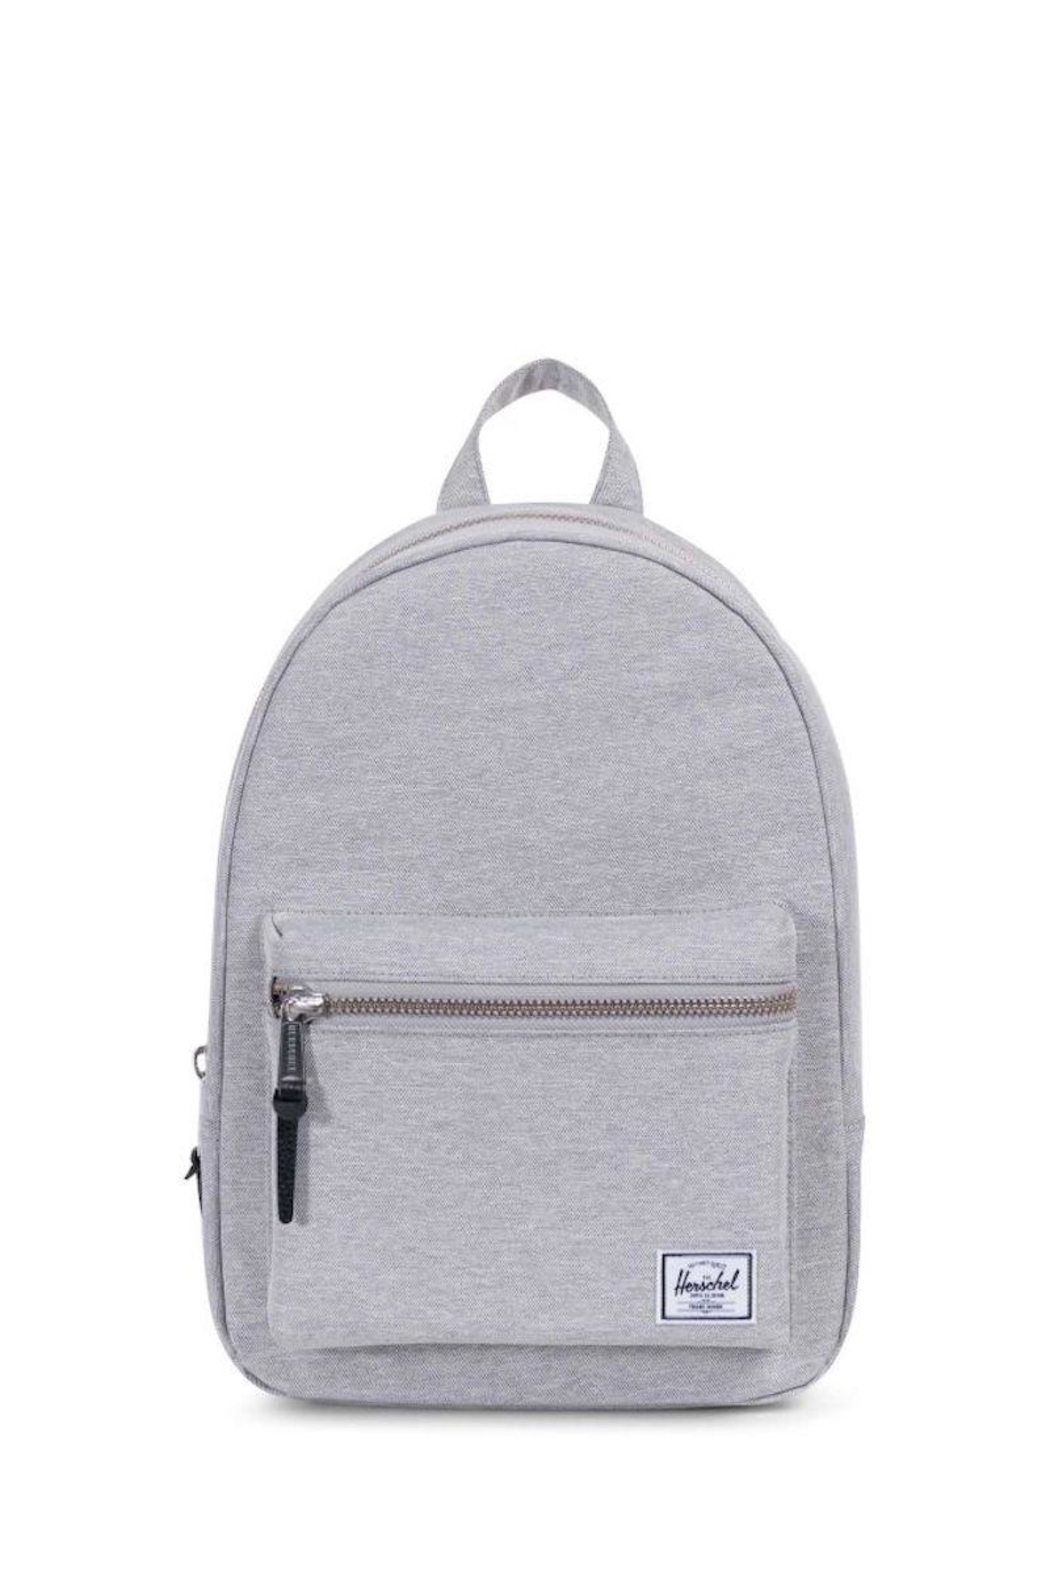 2eb2f65e1a2 Herschel Supply Co. Grey X-Small Backpack from Mississippi by Wilai ...